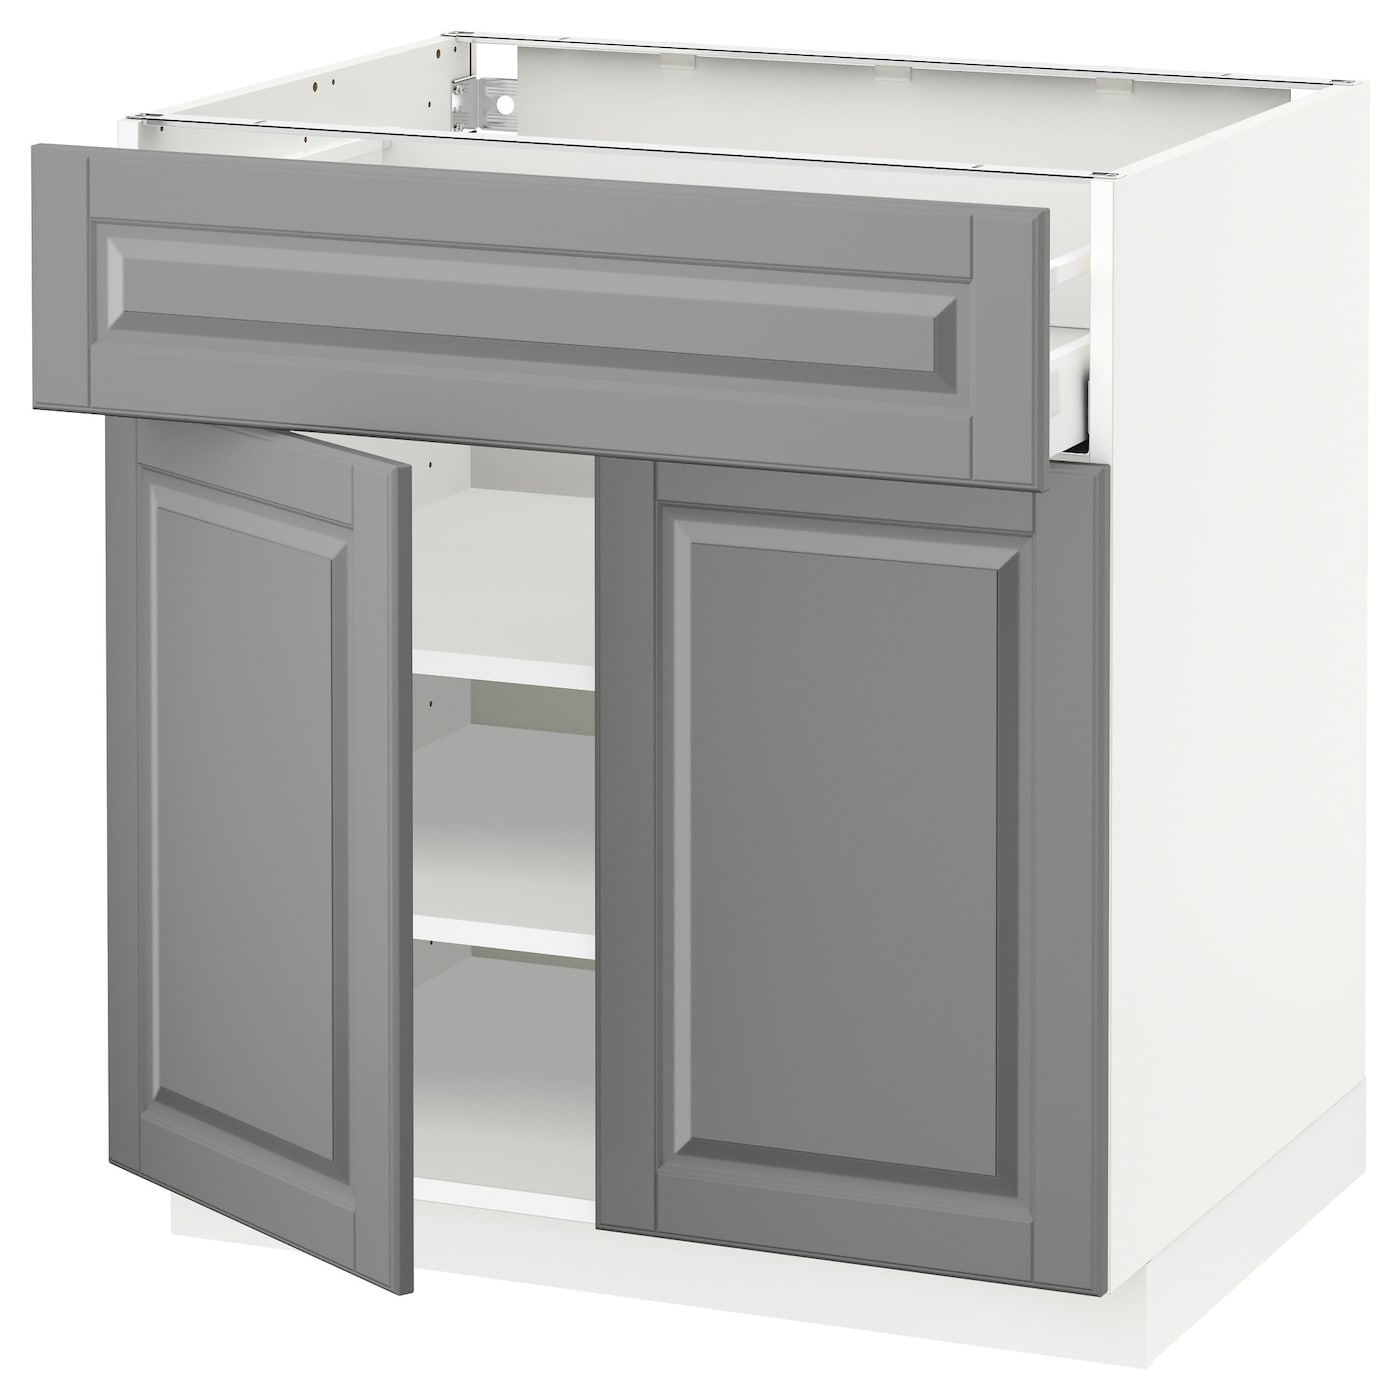 Ringhult Door High Gloss White 60 X 80 Cm: METOD/MAXIMERA Base Cabinet With Drawer/2 Doors White